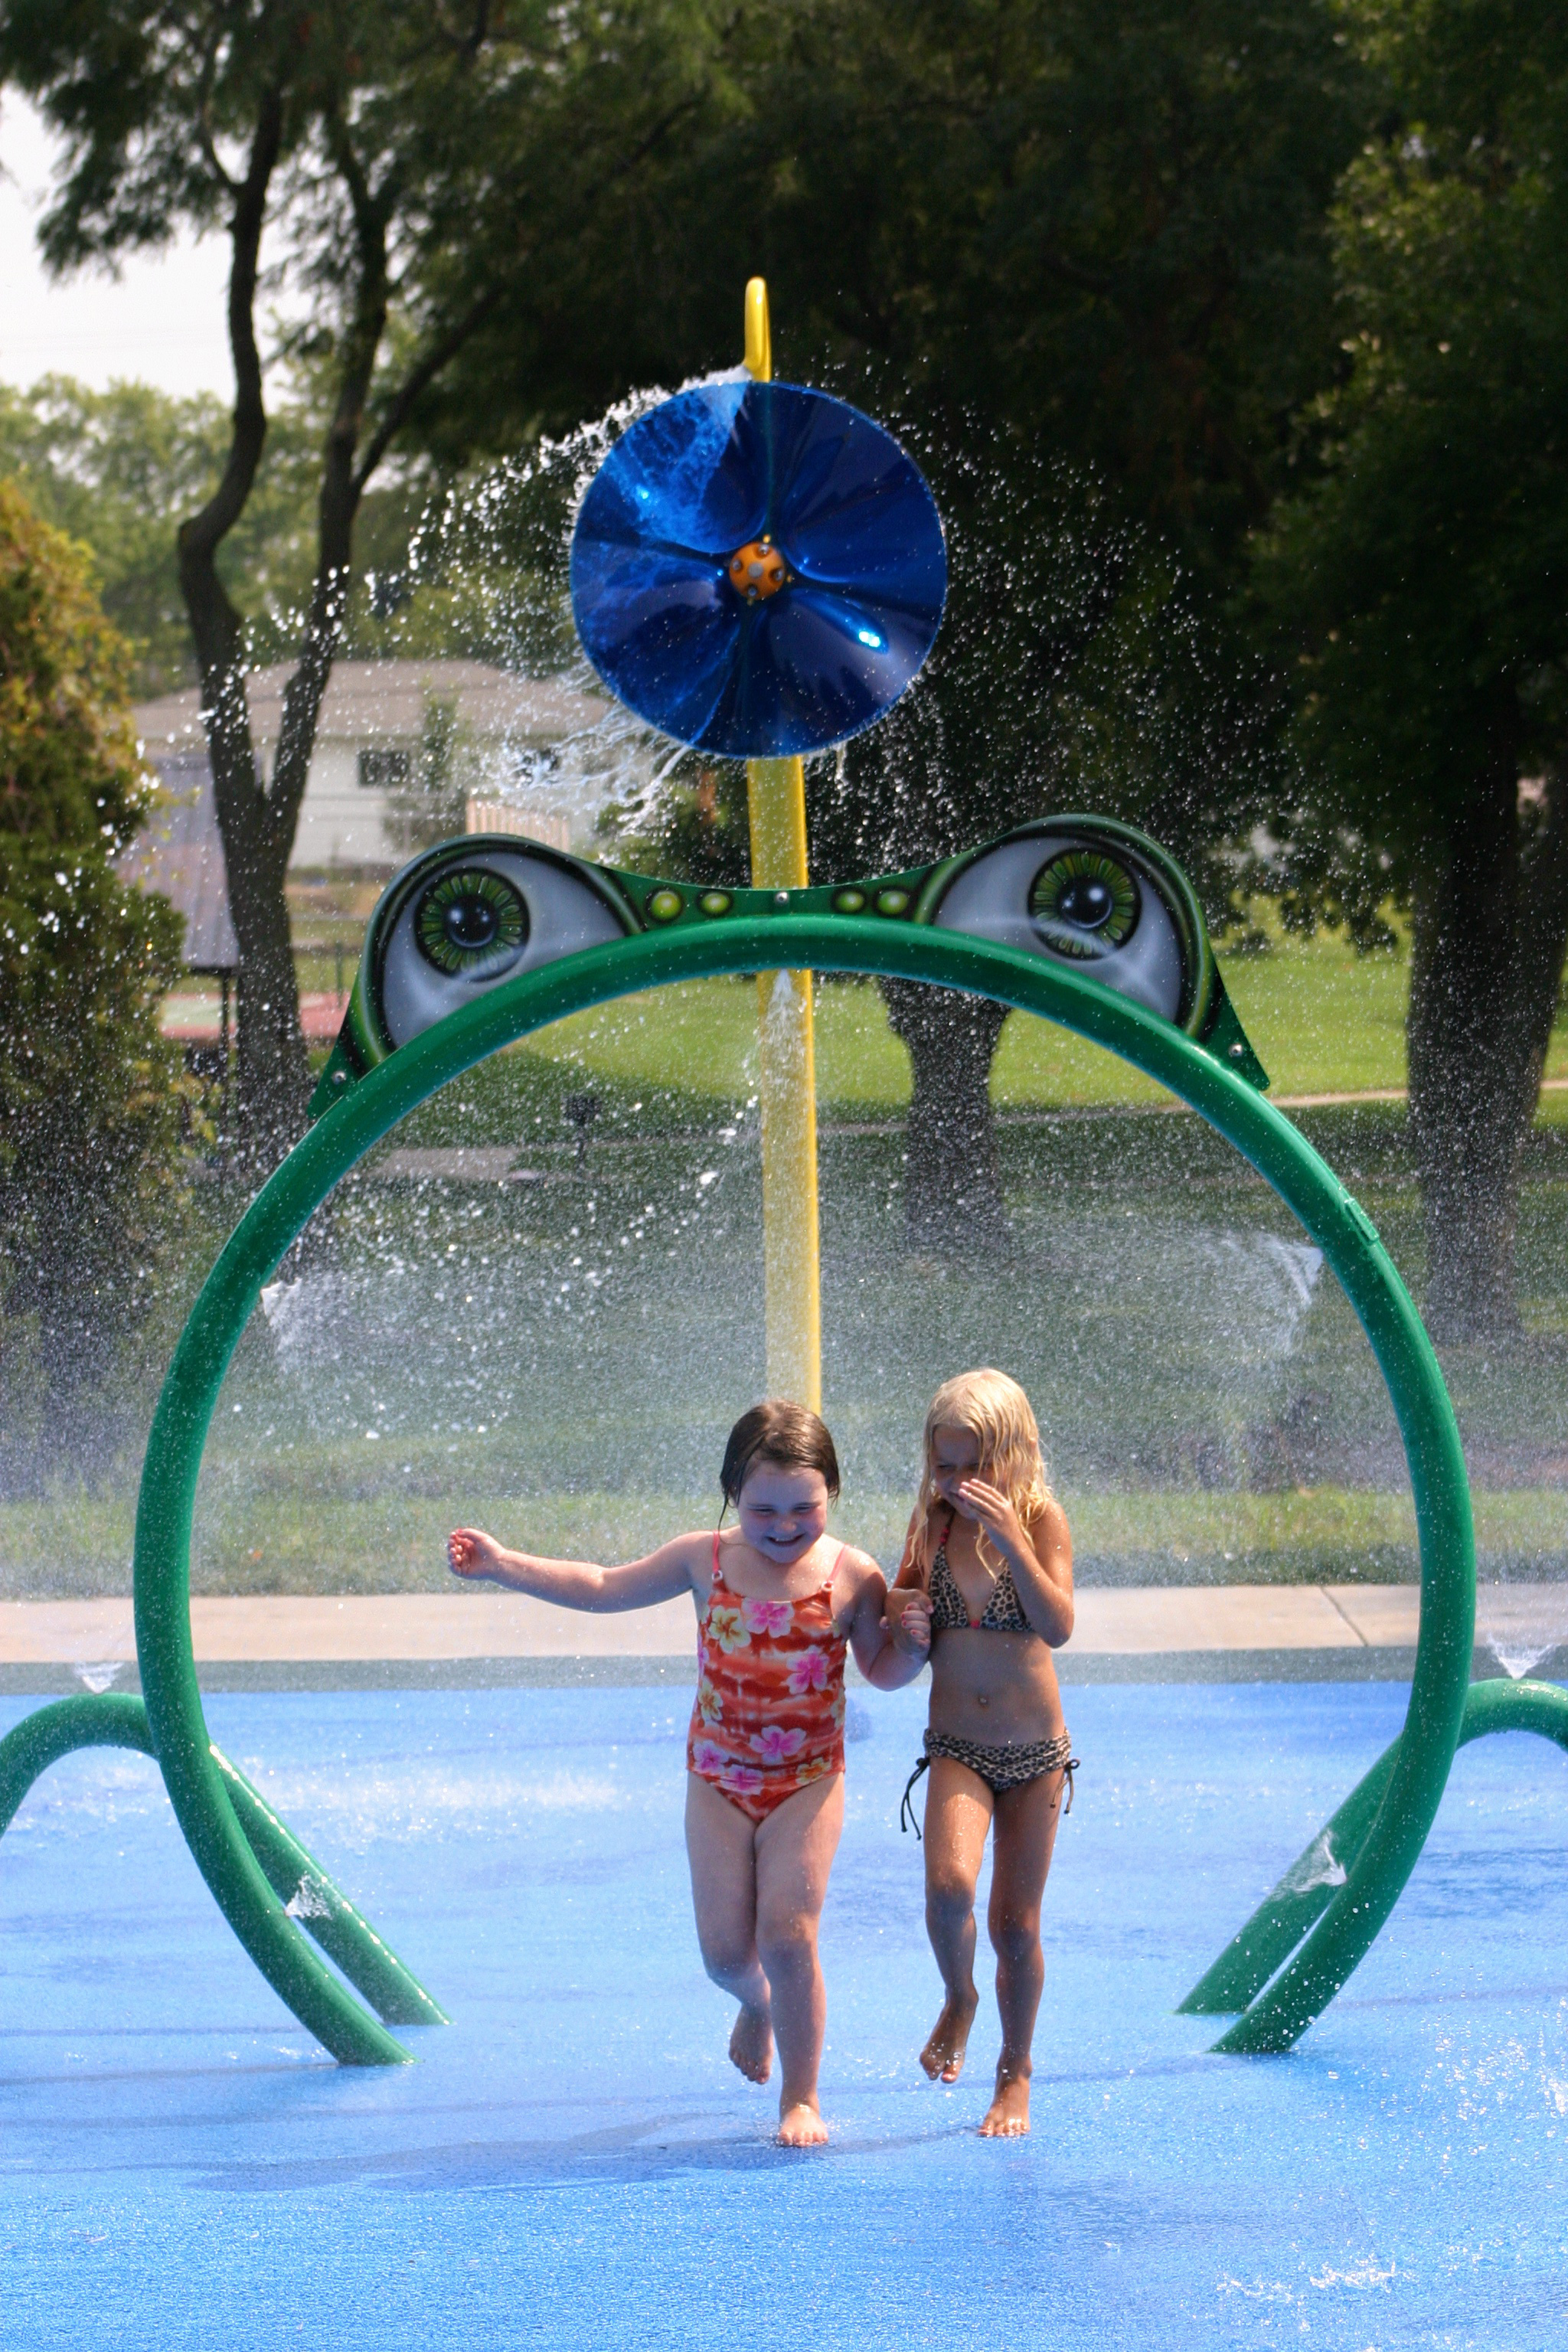 Two children at a splash pad